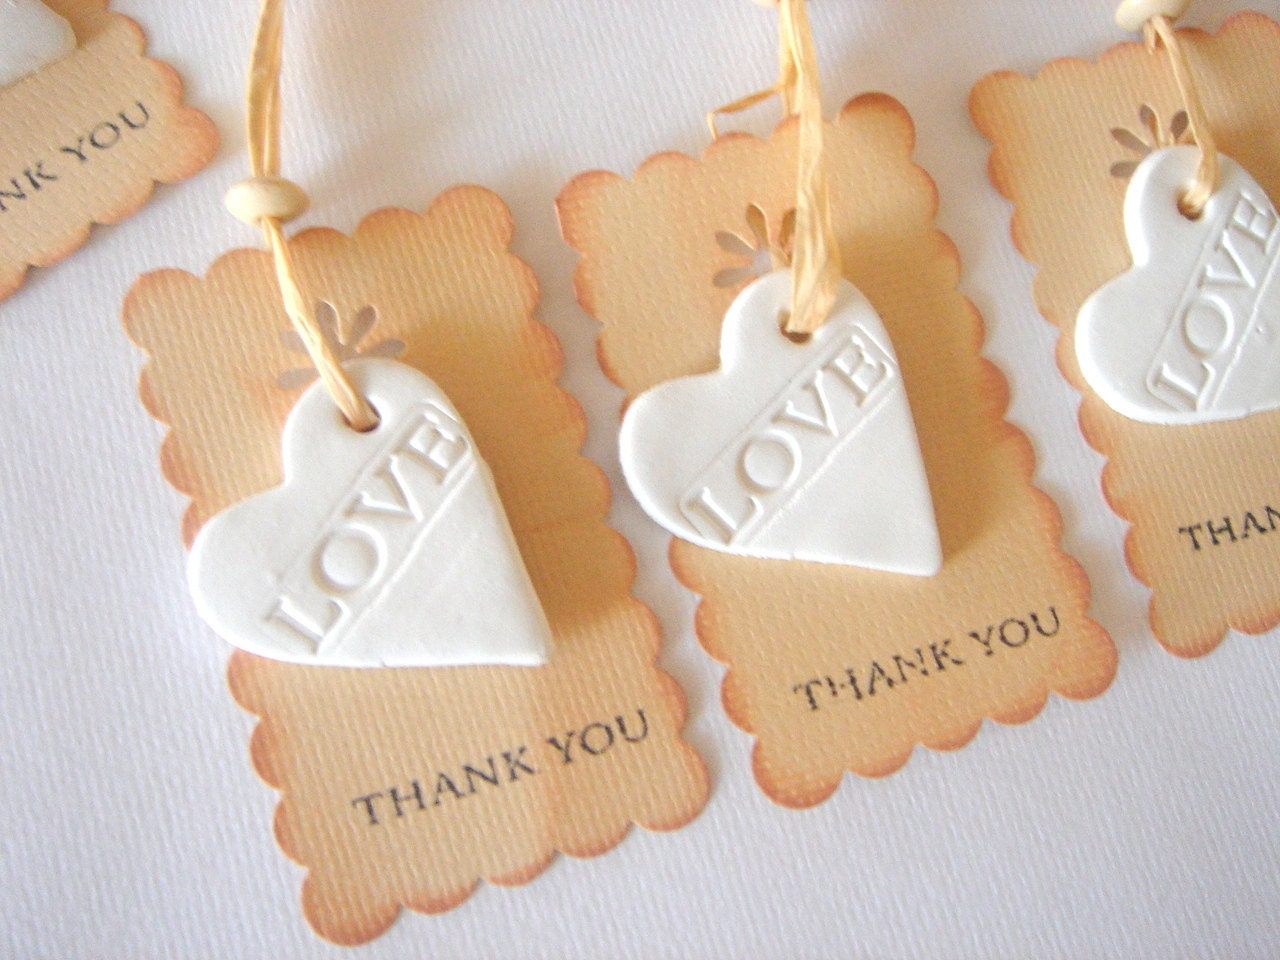 Wedding Shower Favor,Favor Thank you,Rustic Favor Tag,Wedding Ceramic Tags,Baby Shower Favor , Shower Favor, - accessory8